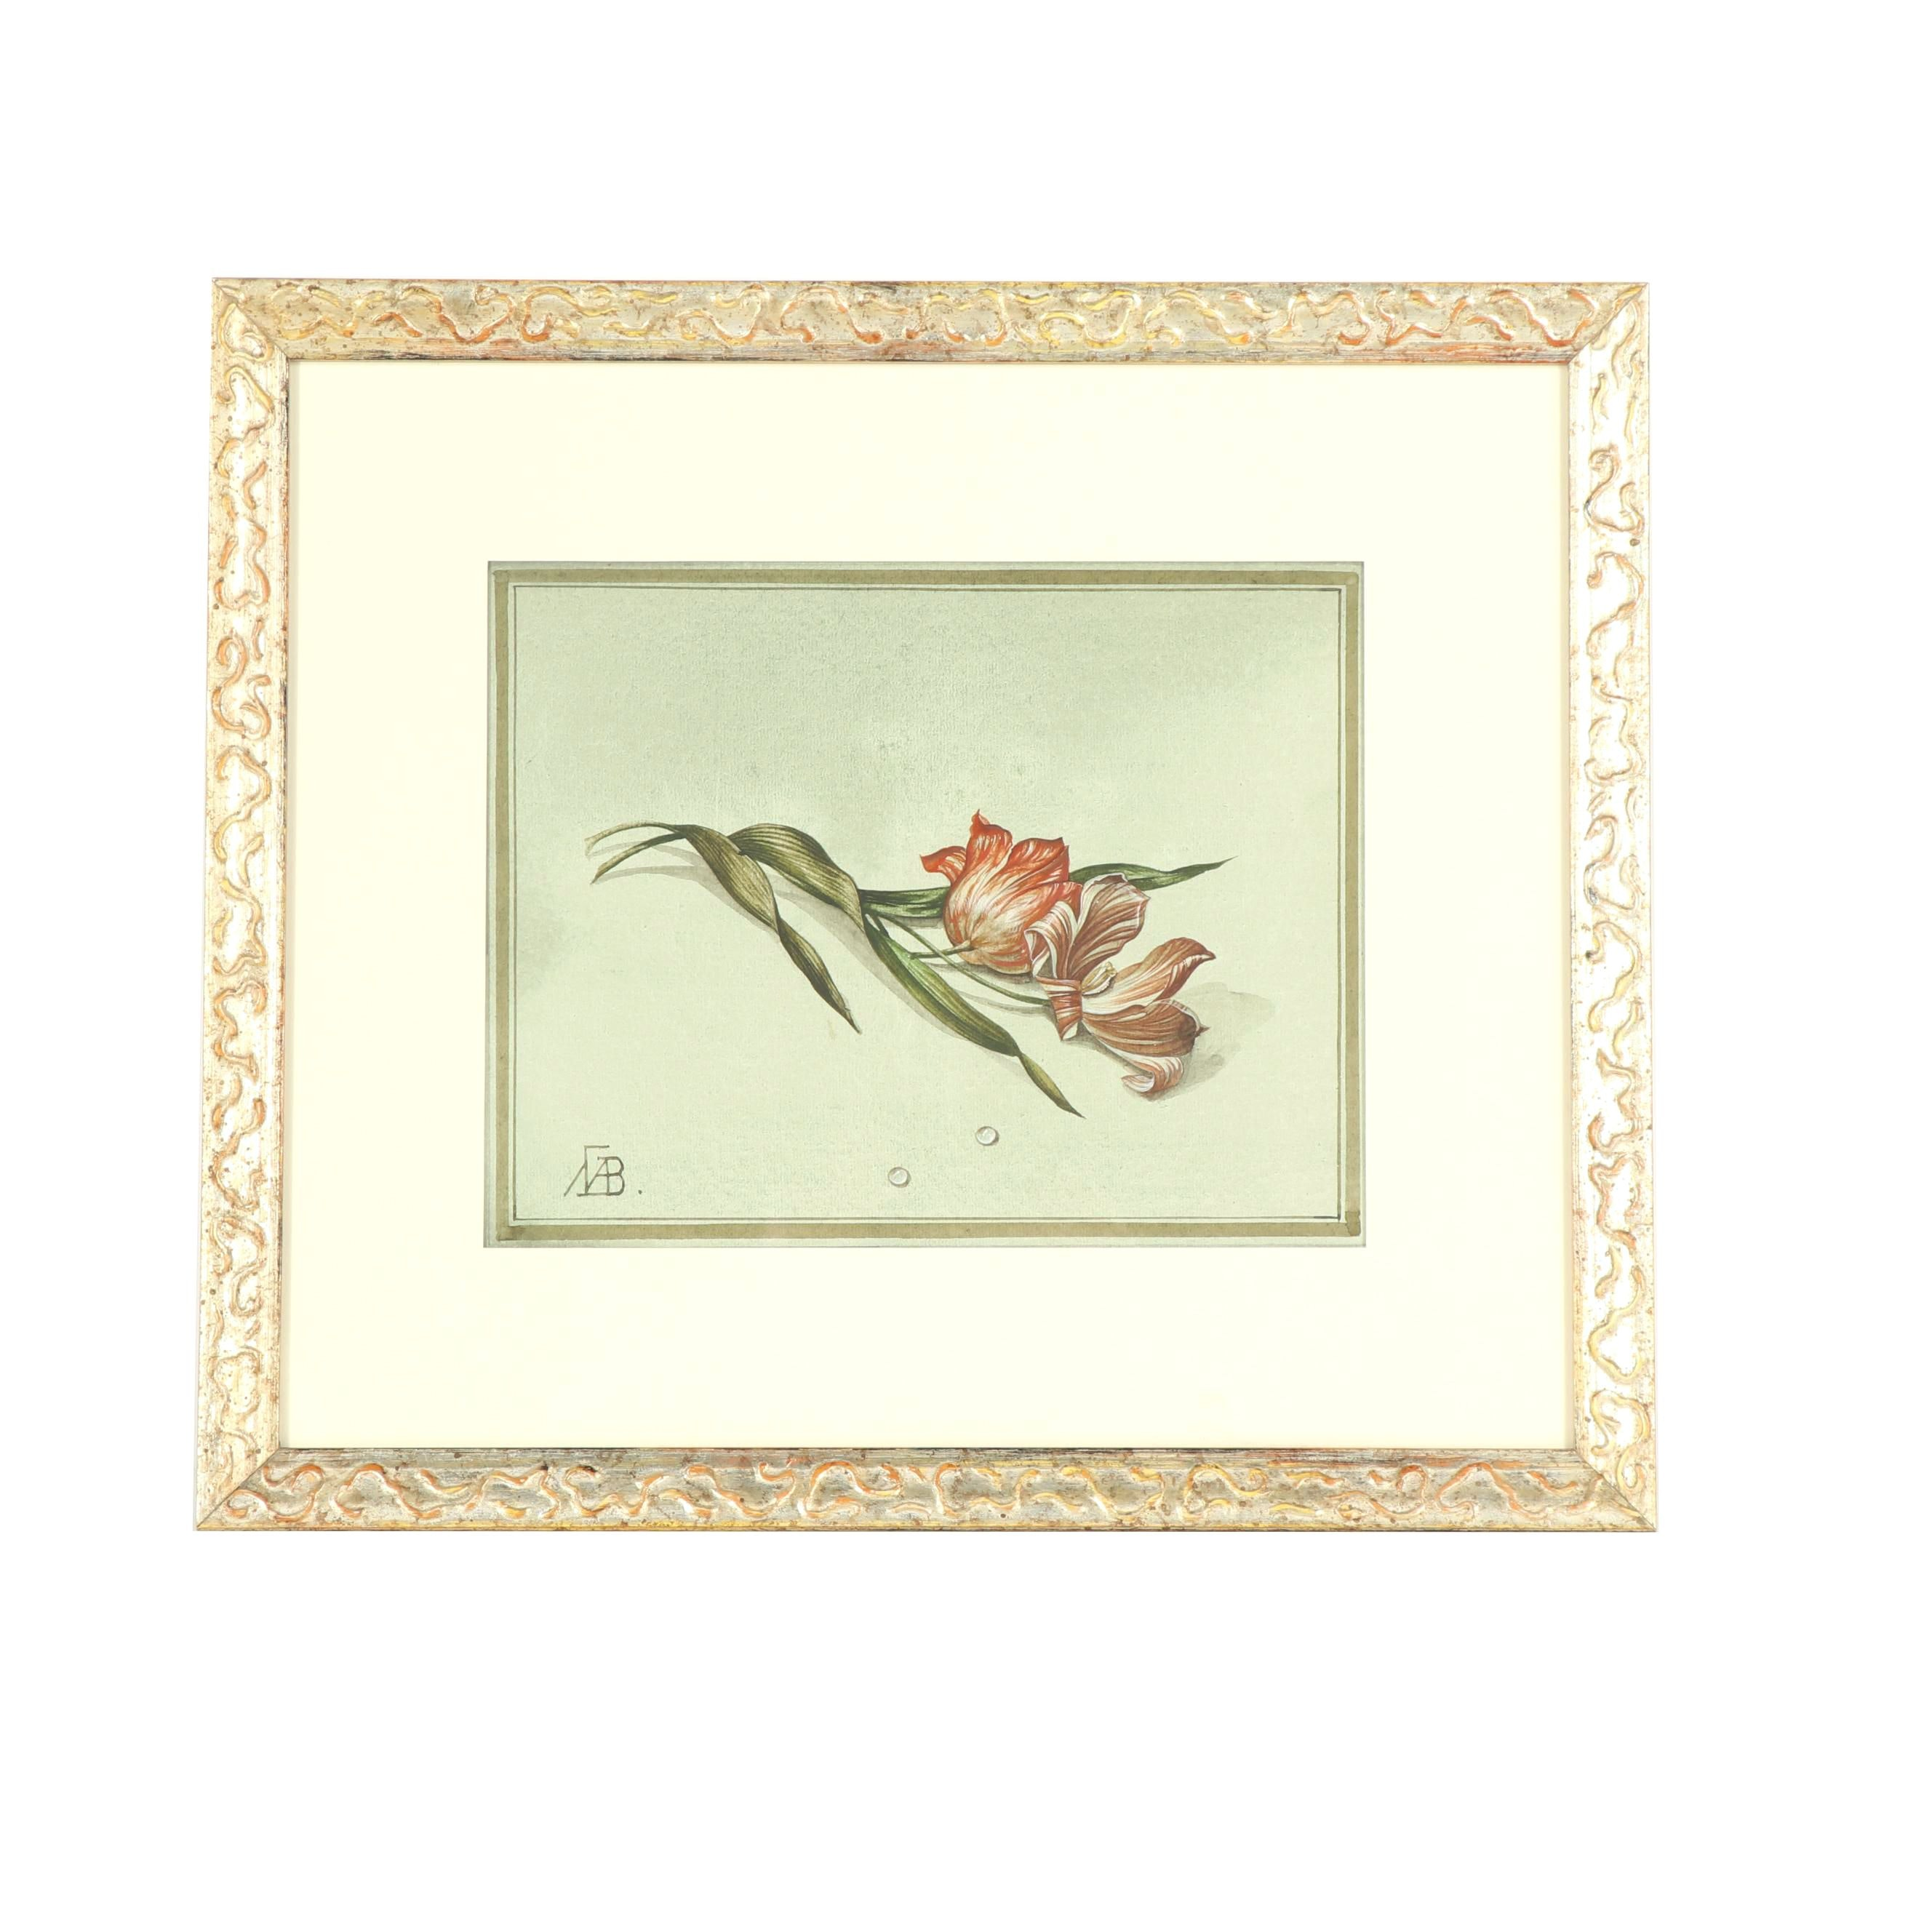 Floral Still Life Watercolor Painting